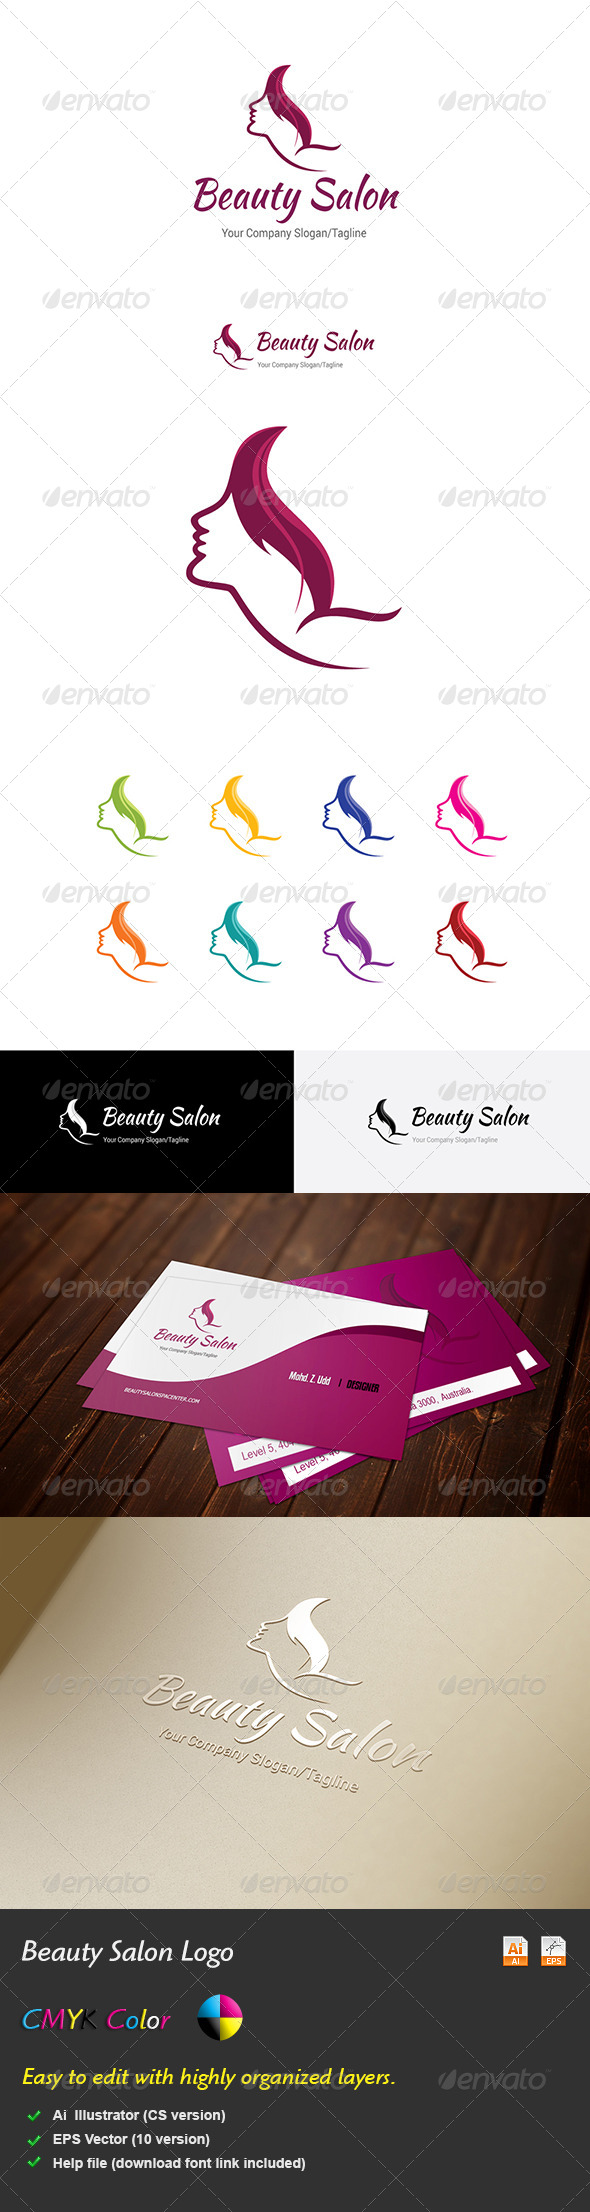 GraphicRiver Beauty Salon 5633854